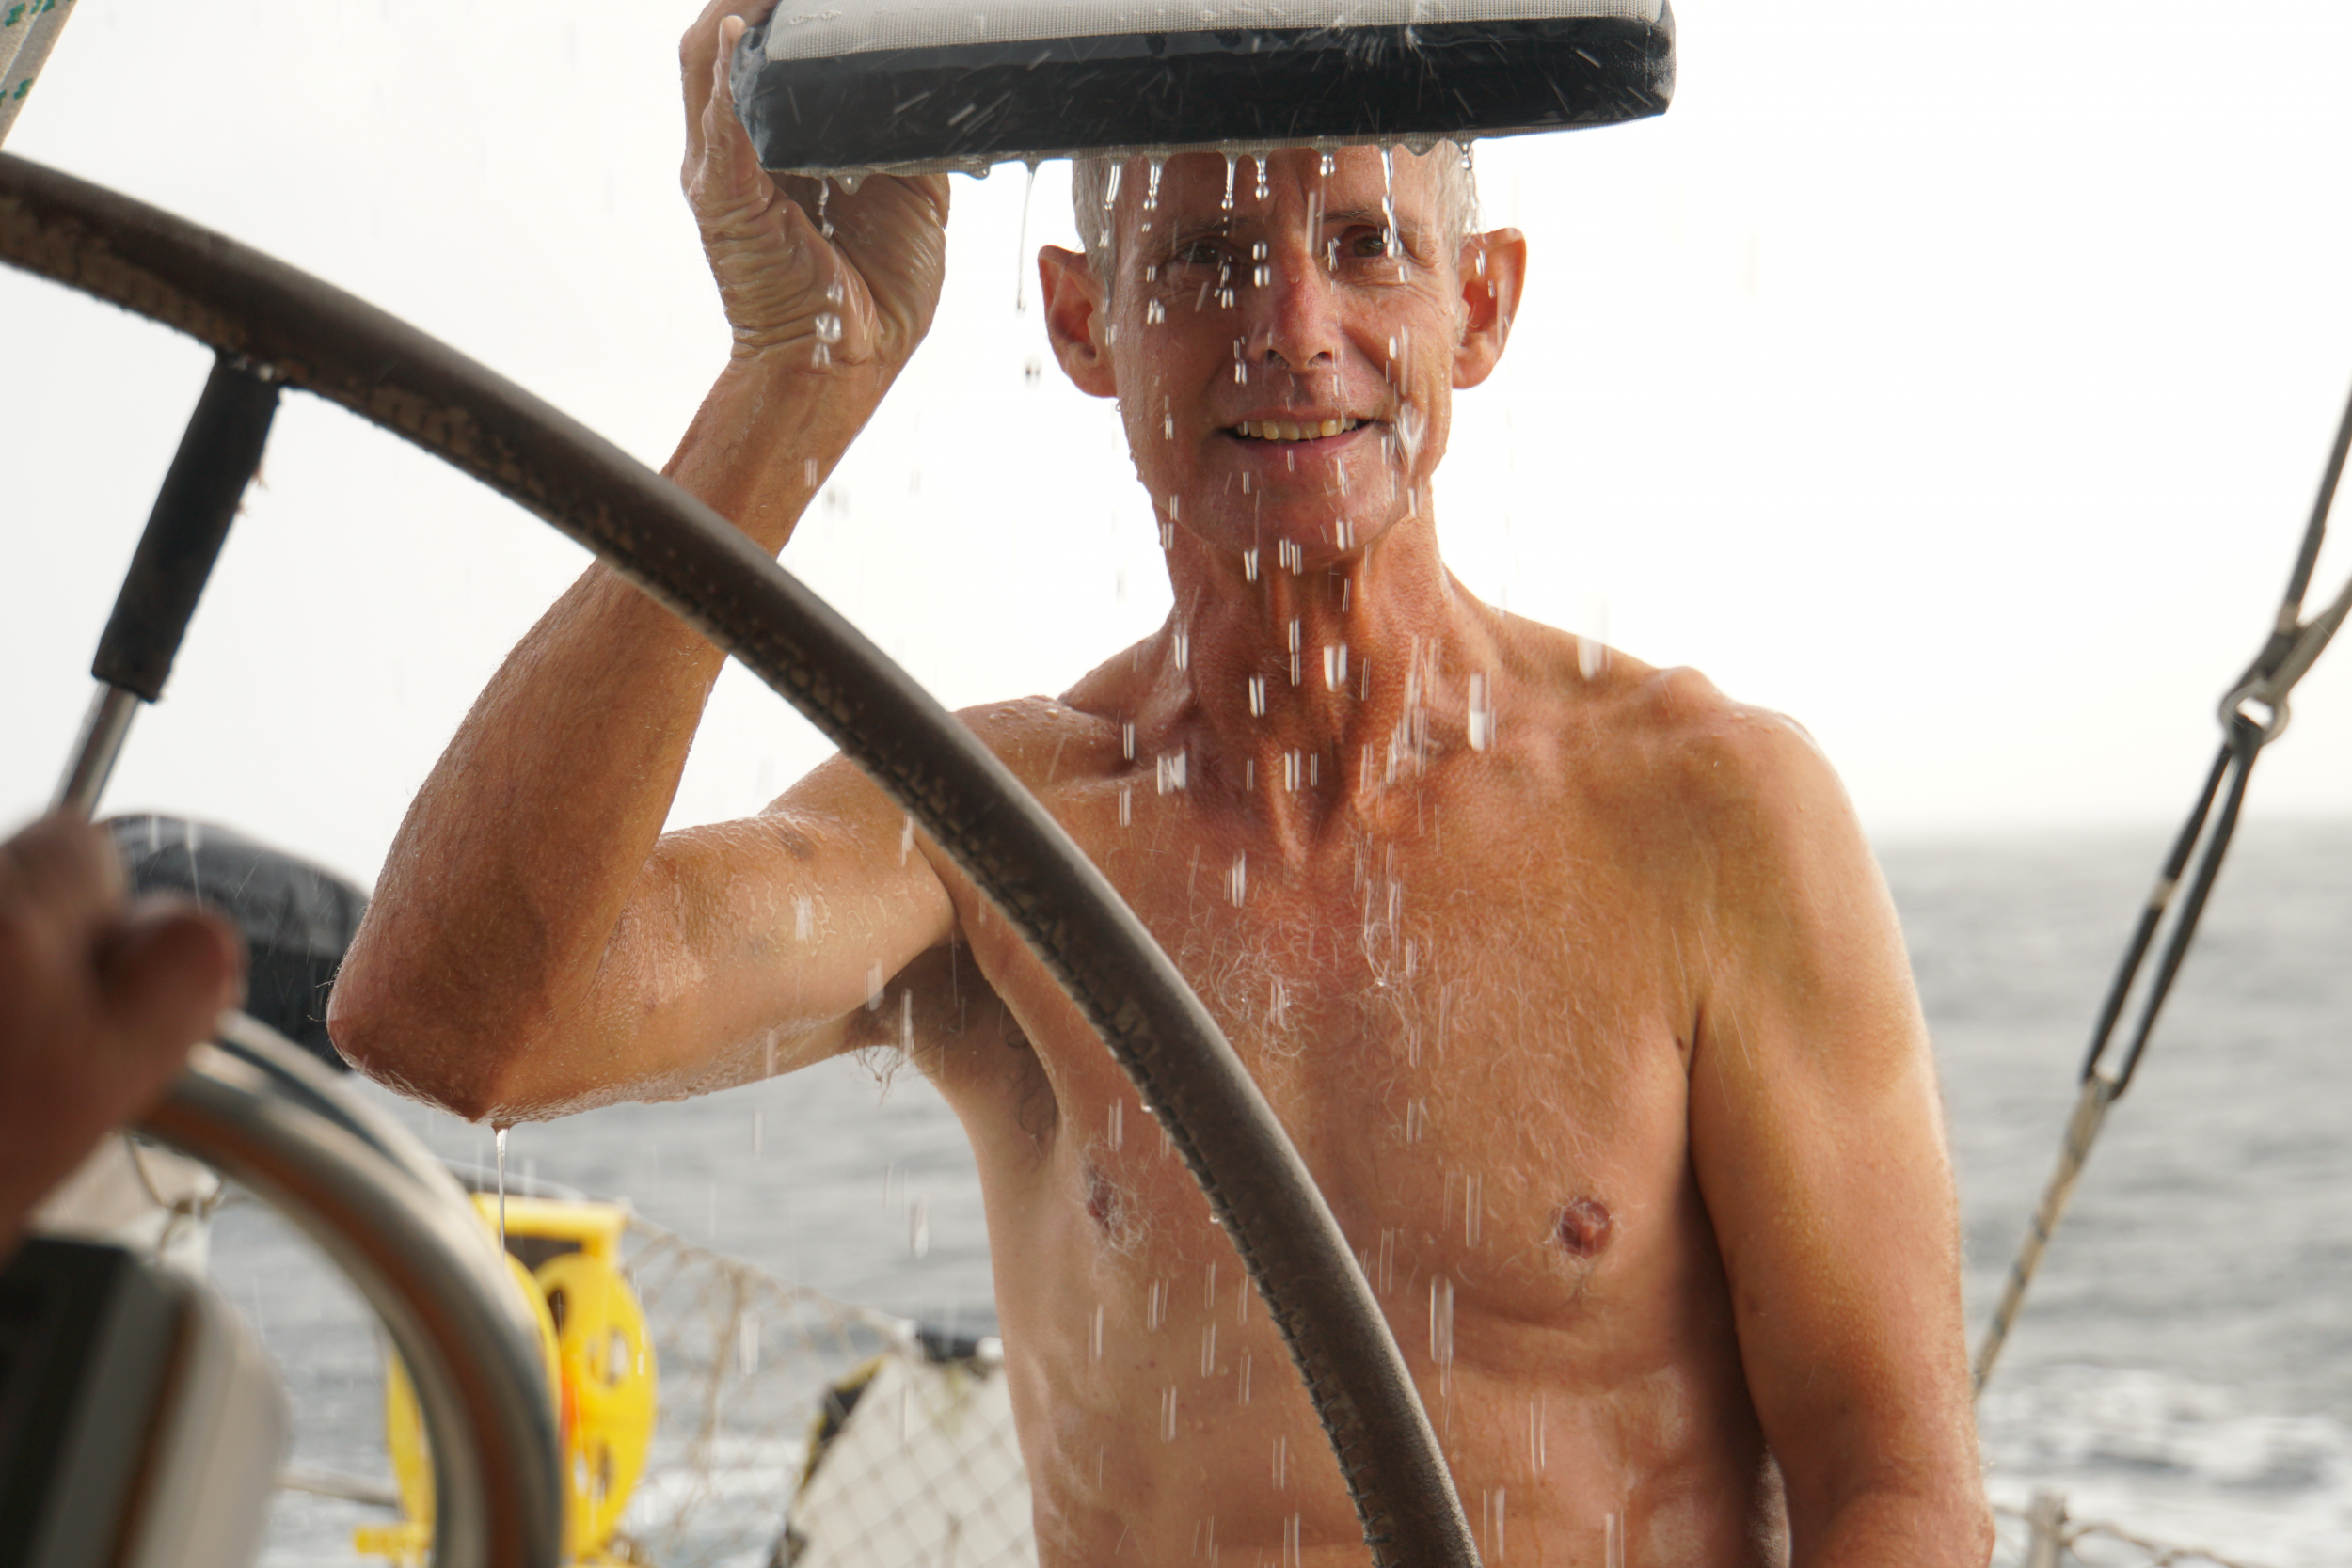 14. Sailing isn't always sunny in the Caribbean